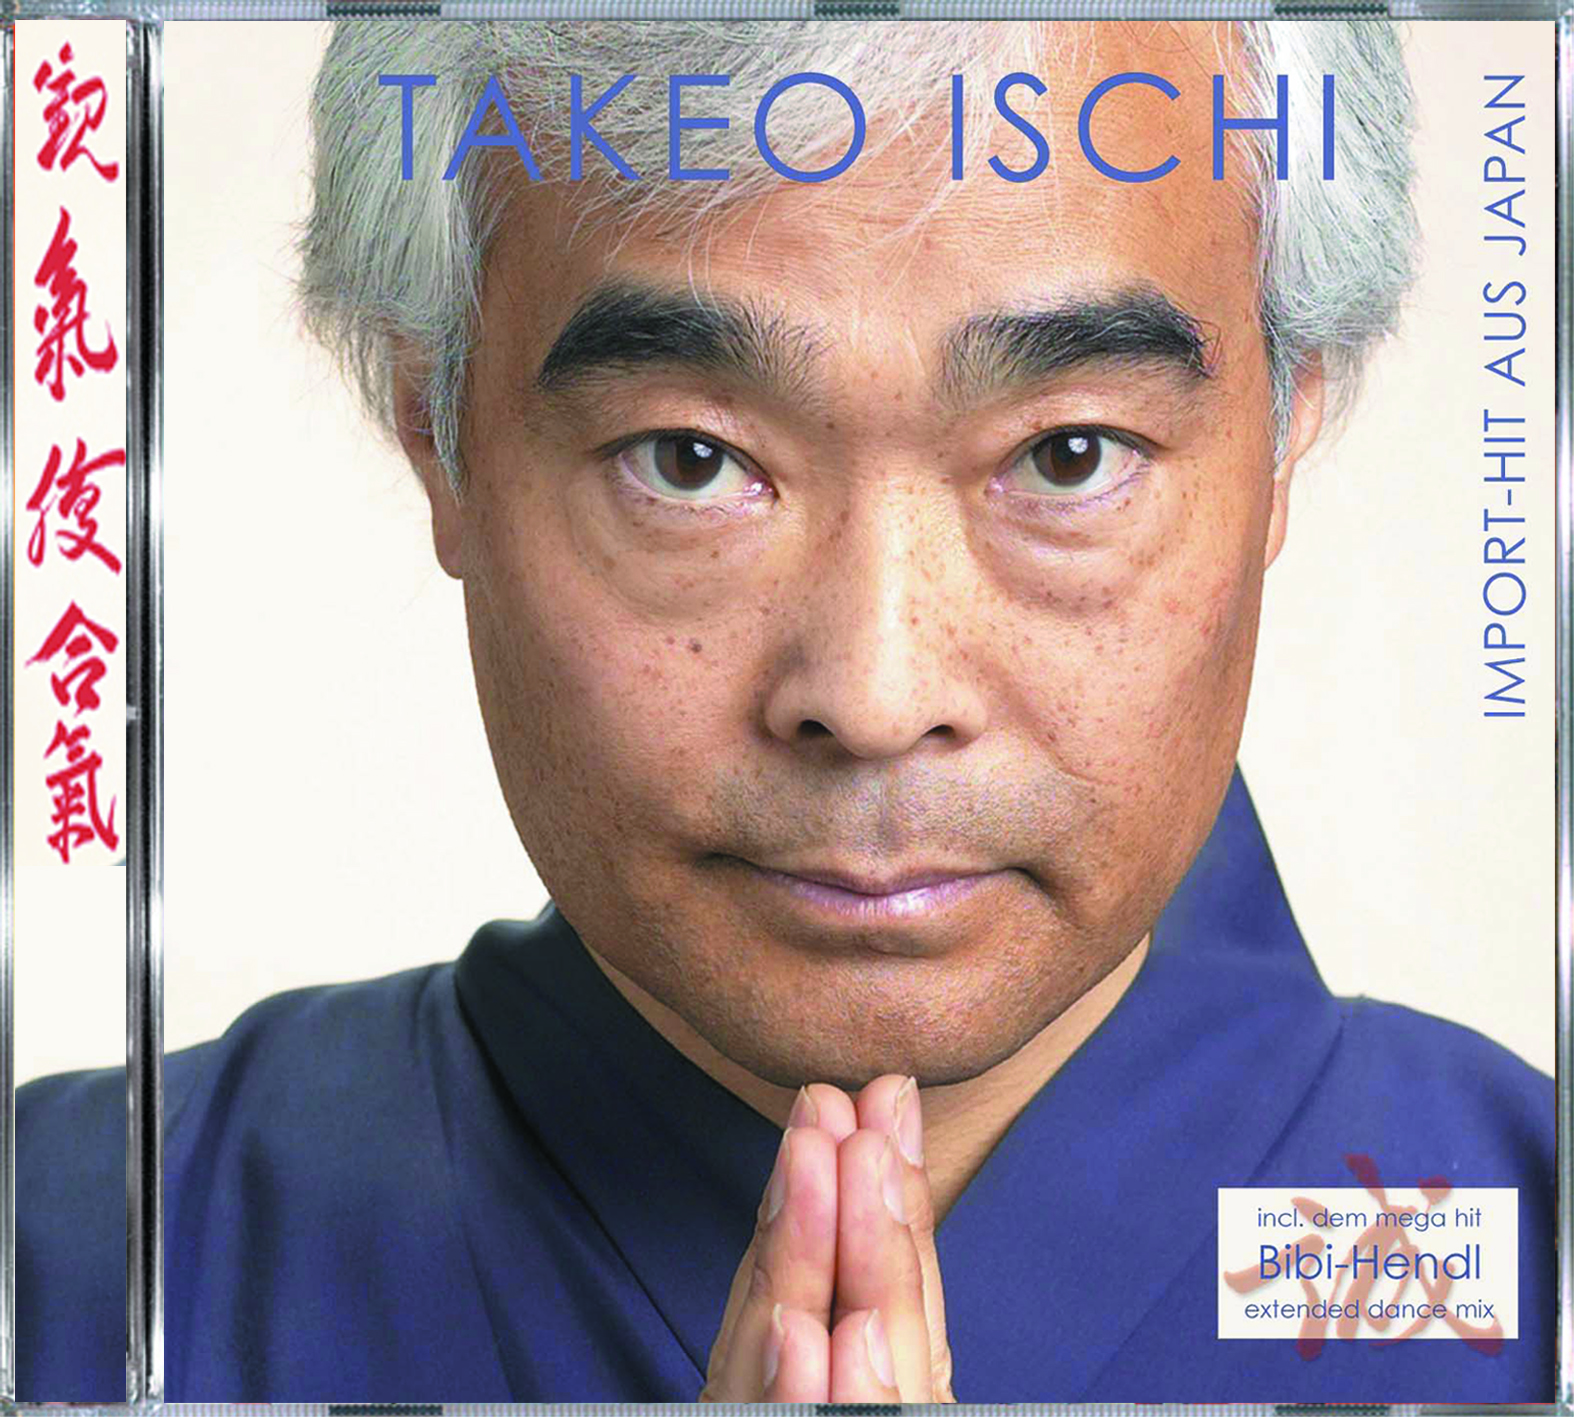 Takeo Ischi - Importhit aus Japan (Album)